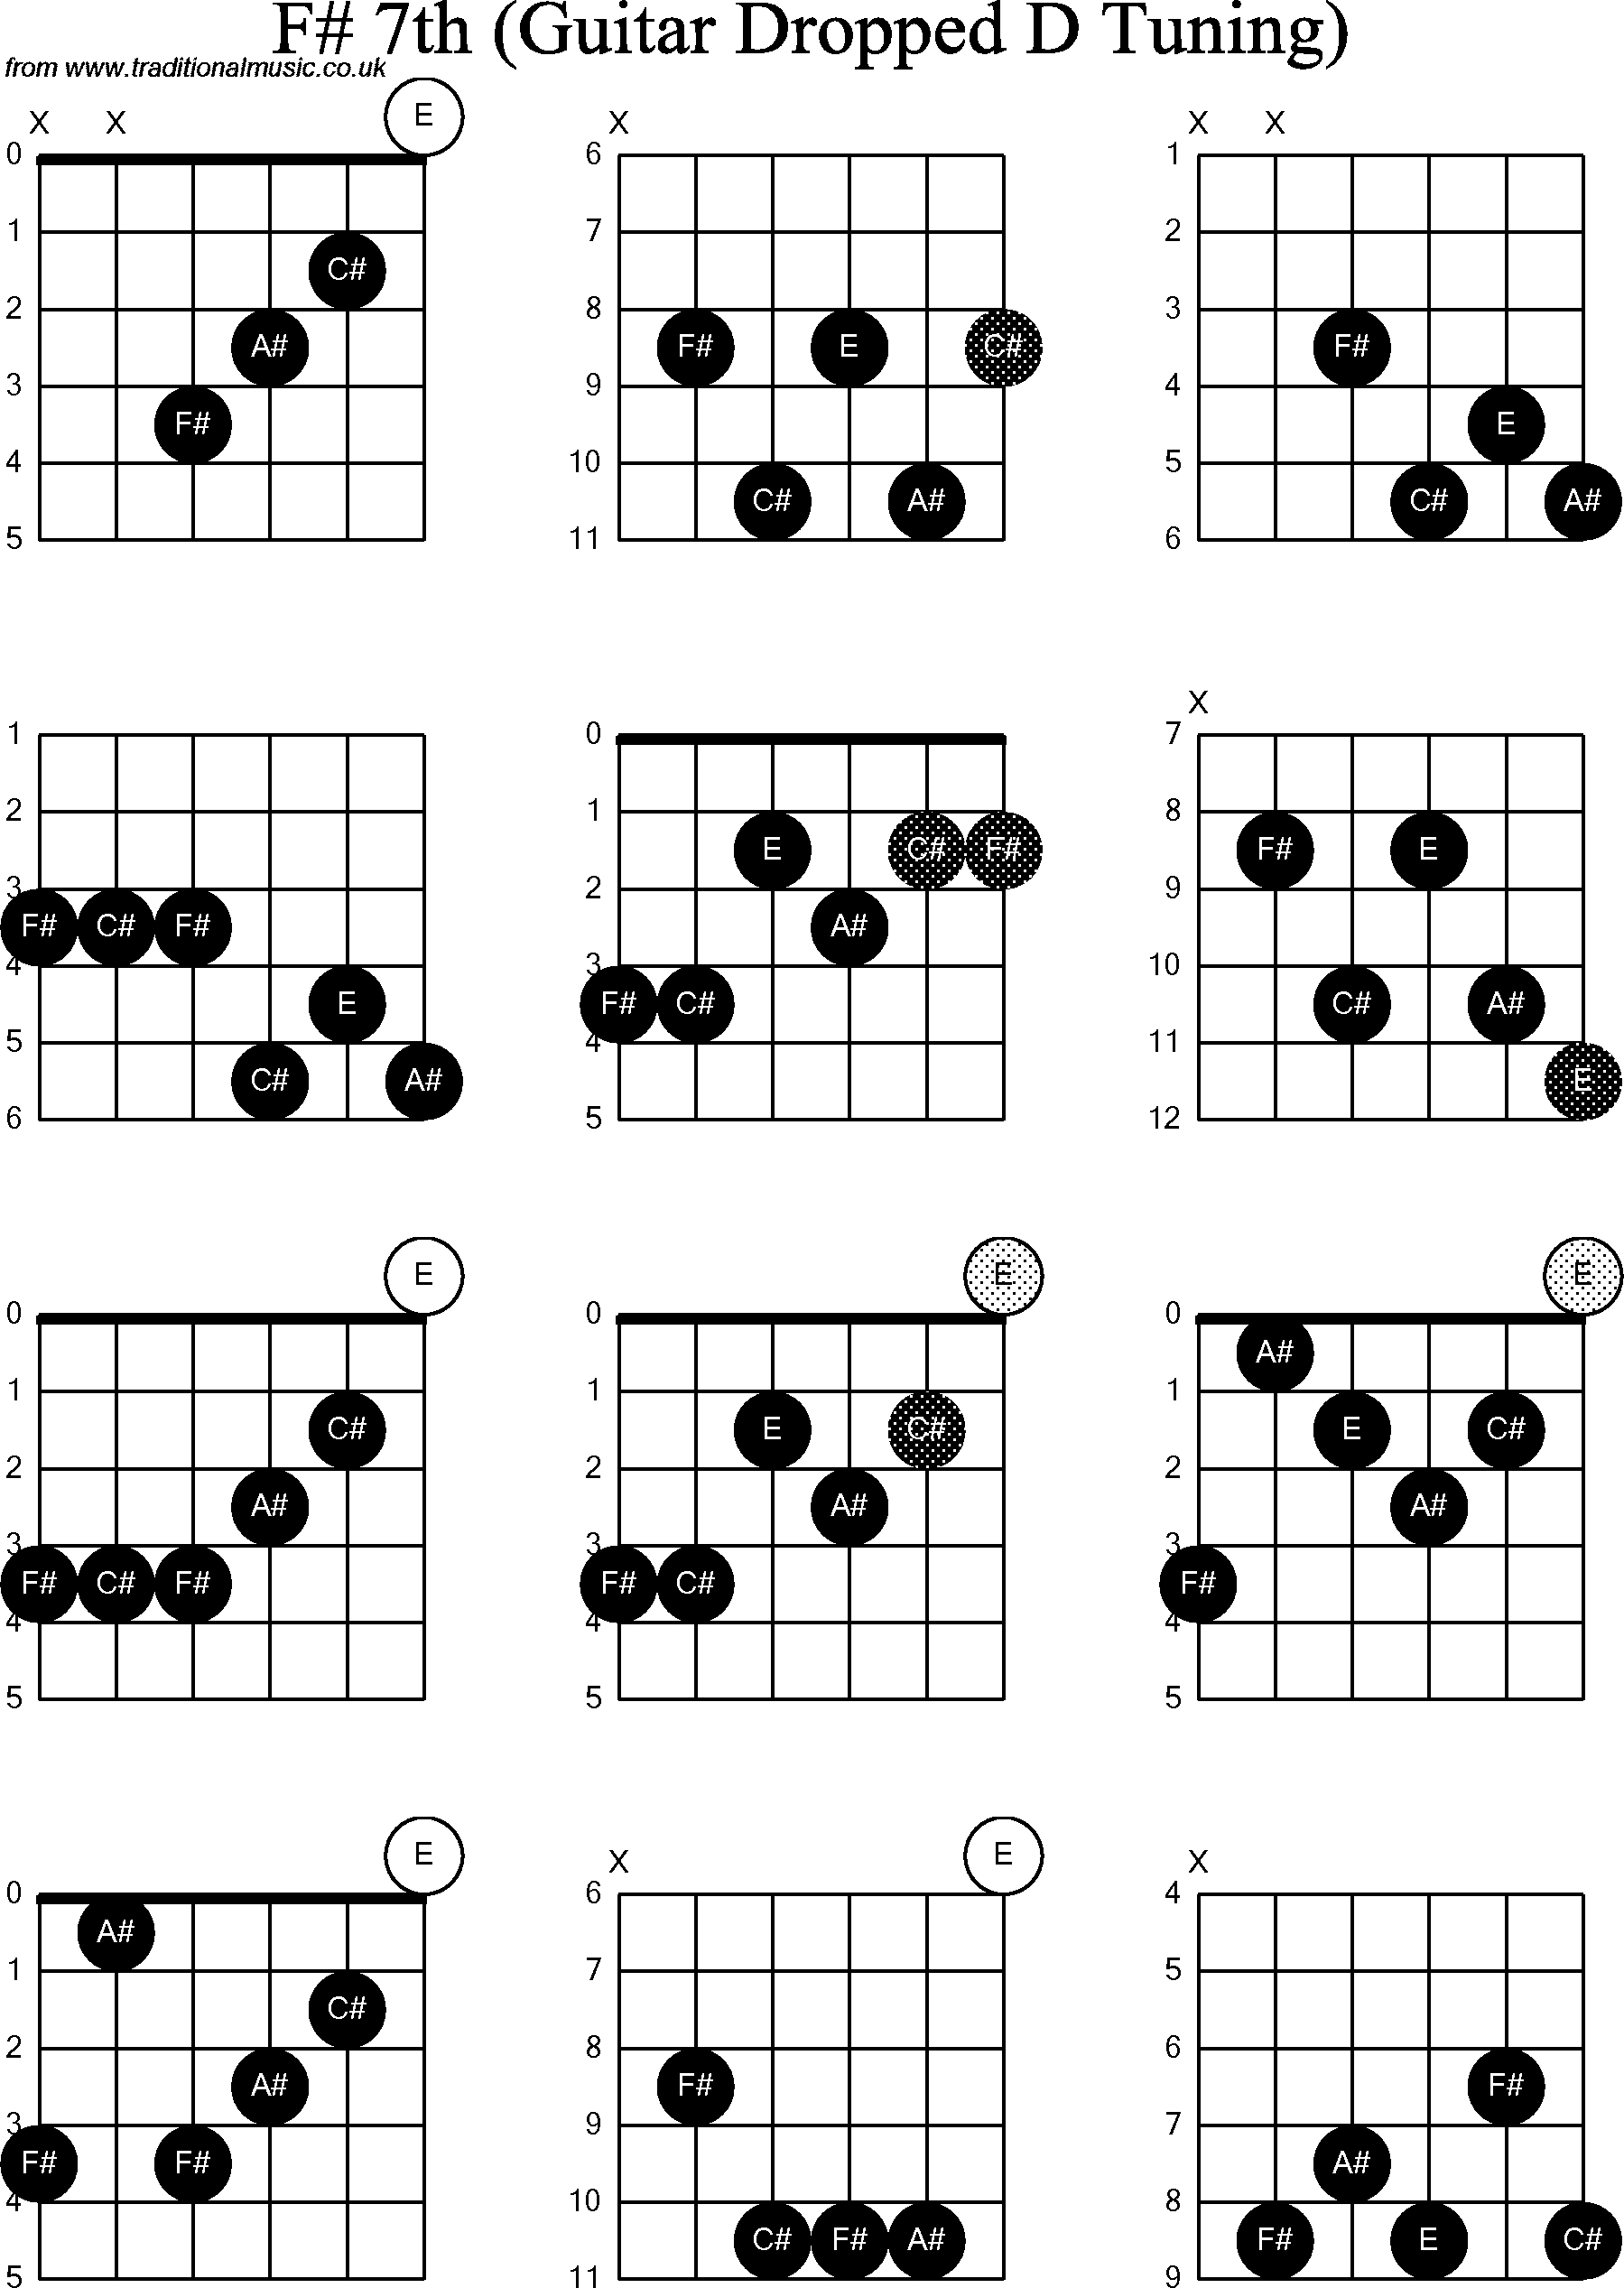 F Chord On Guitar Chord Diagrams For Dropped D Guitardadgbe F Sharp7th